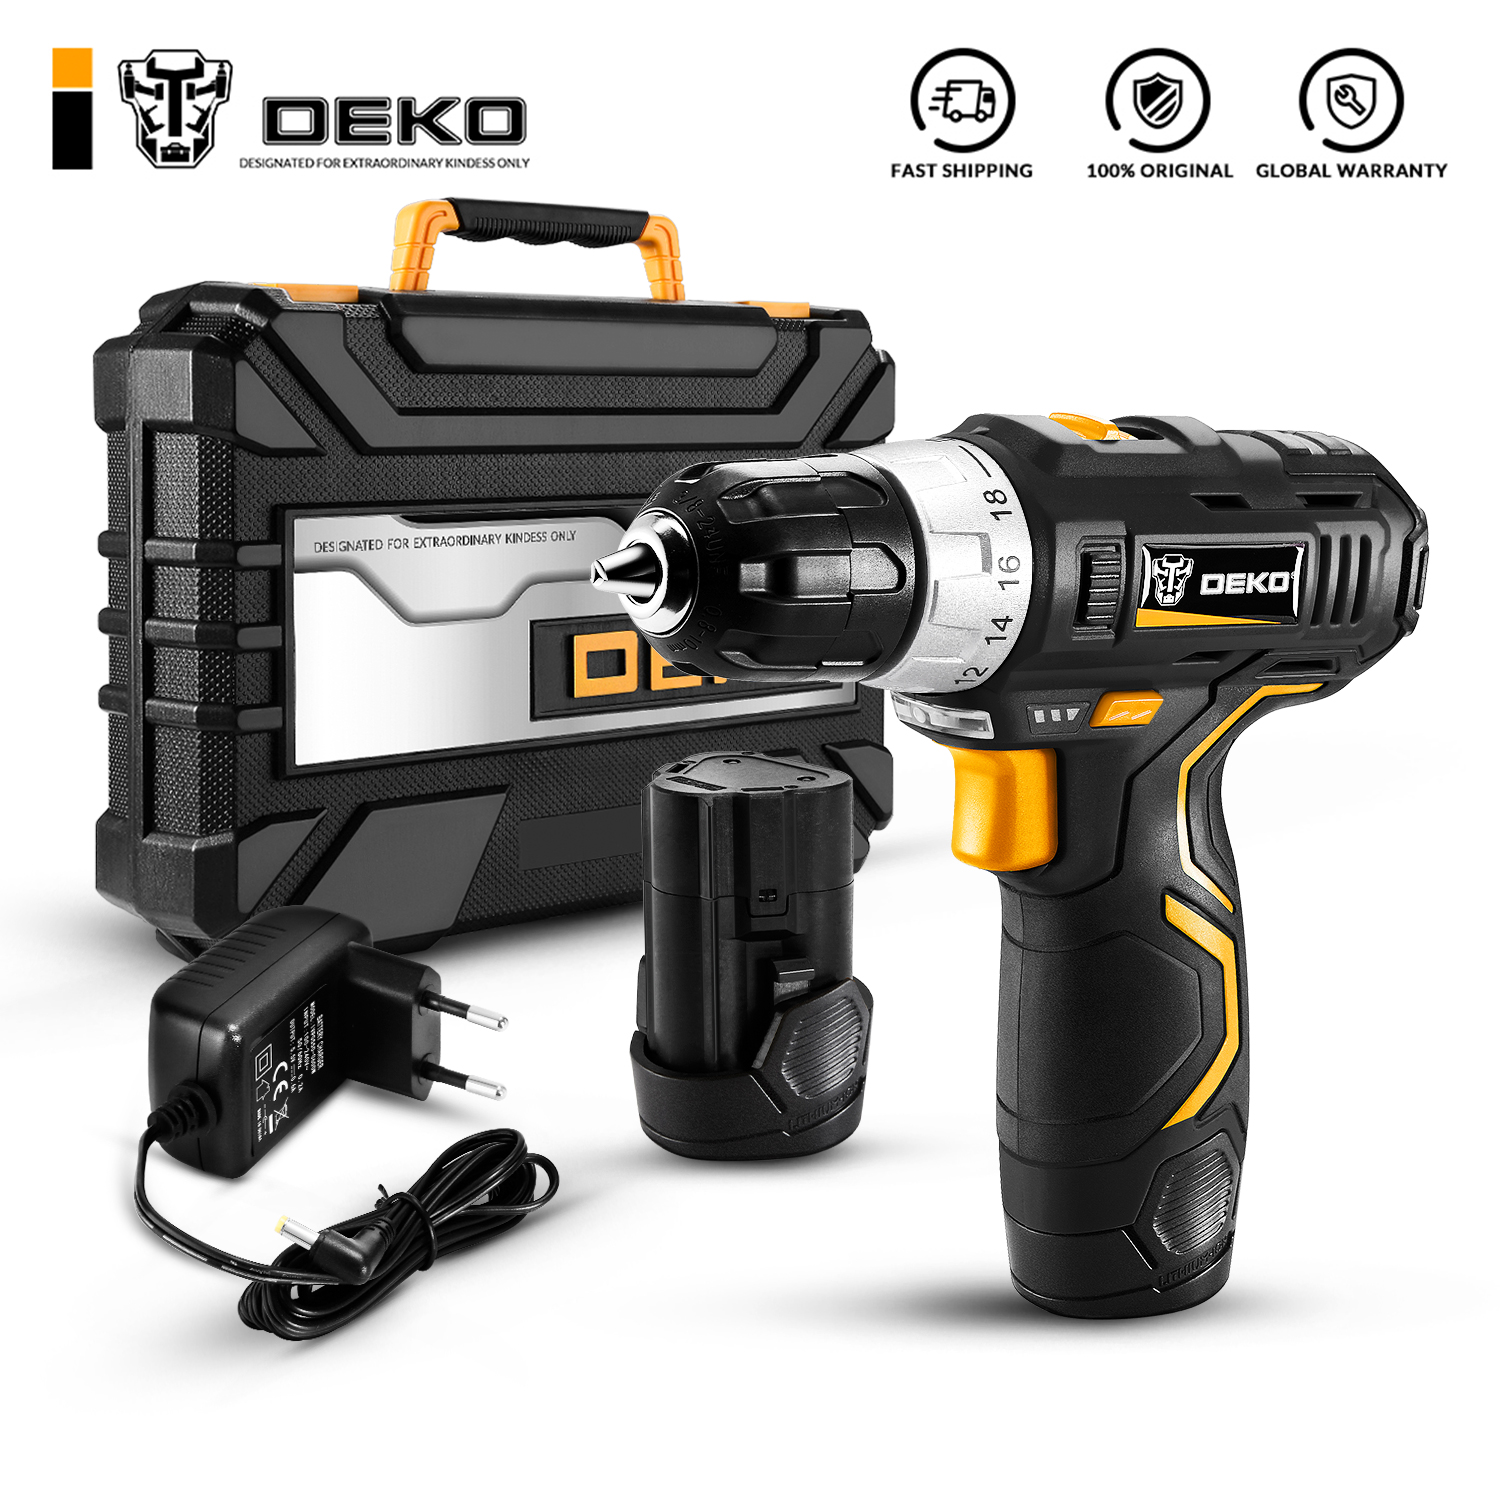 DEKO Power-Driver Battery Cordless-Drill 2-Speed Lithium-Ion DC Max 3/8-Inch 12V